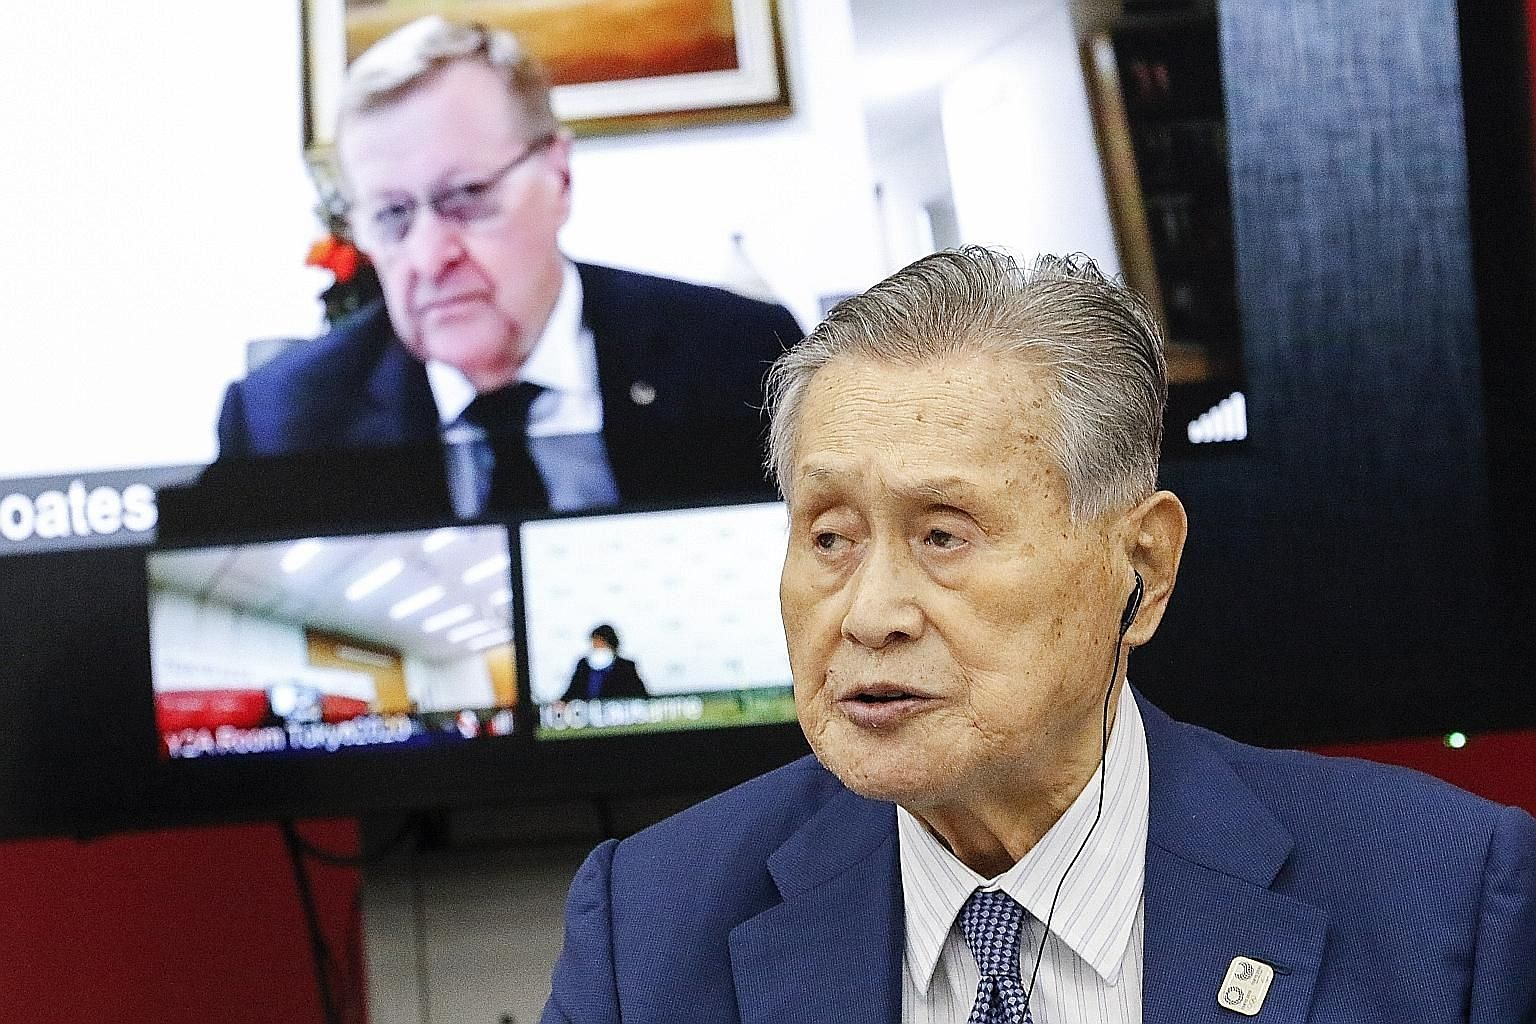 Tokyo Games Committee president Yoshiro Mori and IOC vice-president John Coates attending a press conference in Tokyo yesterday. Officials and organisers have agreed on over 50 cost-cutting measures.